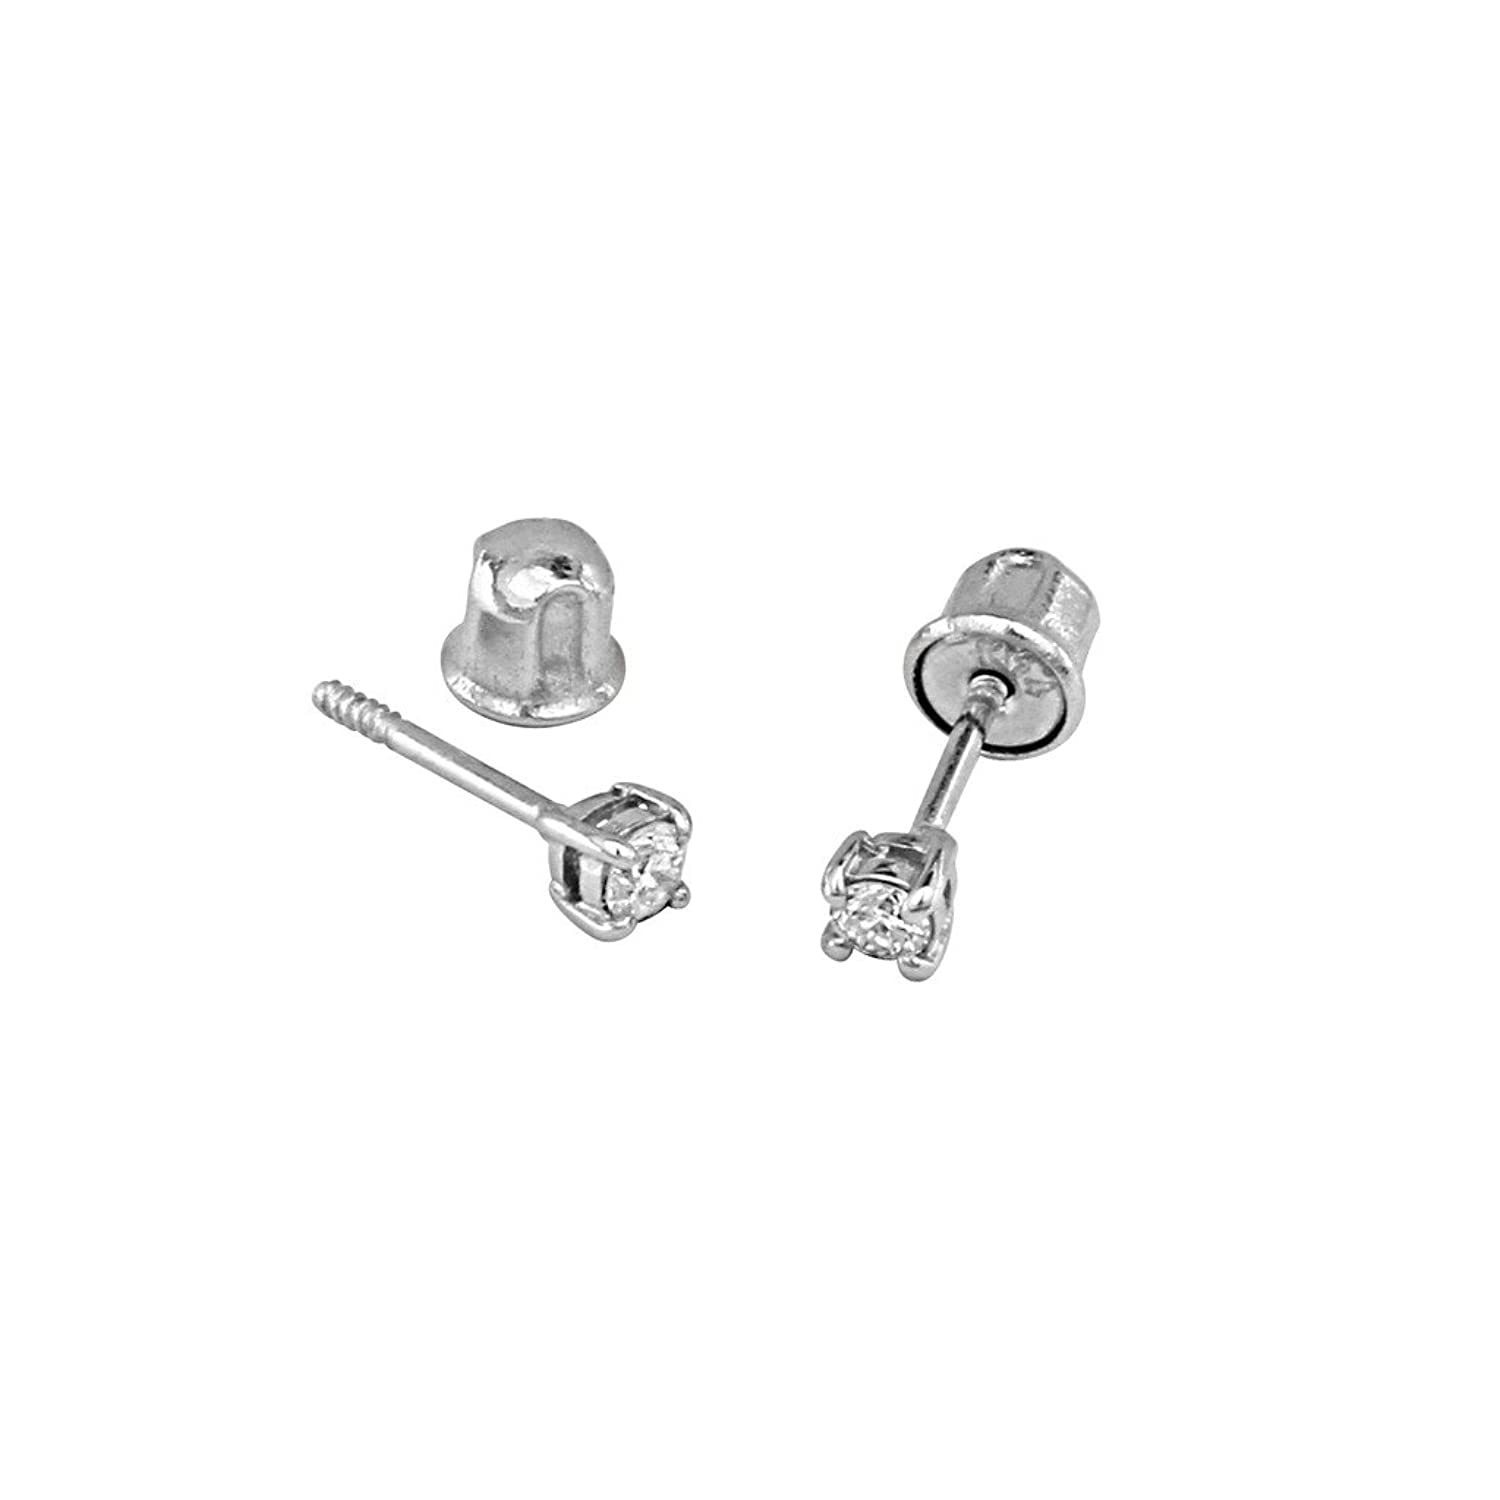 clear dp cz earrings com ear system silver hypoallergenic studs piercing post stainless amazon mini studex type